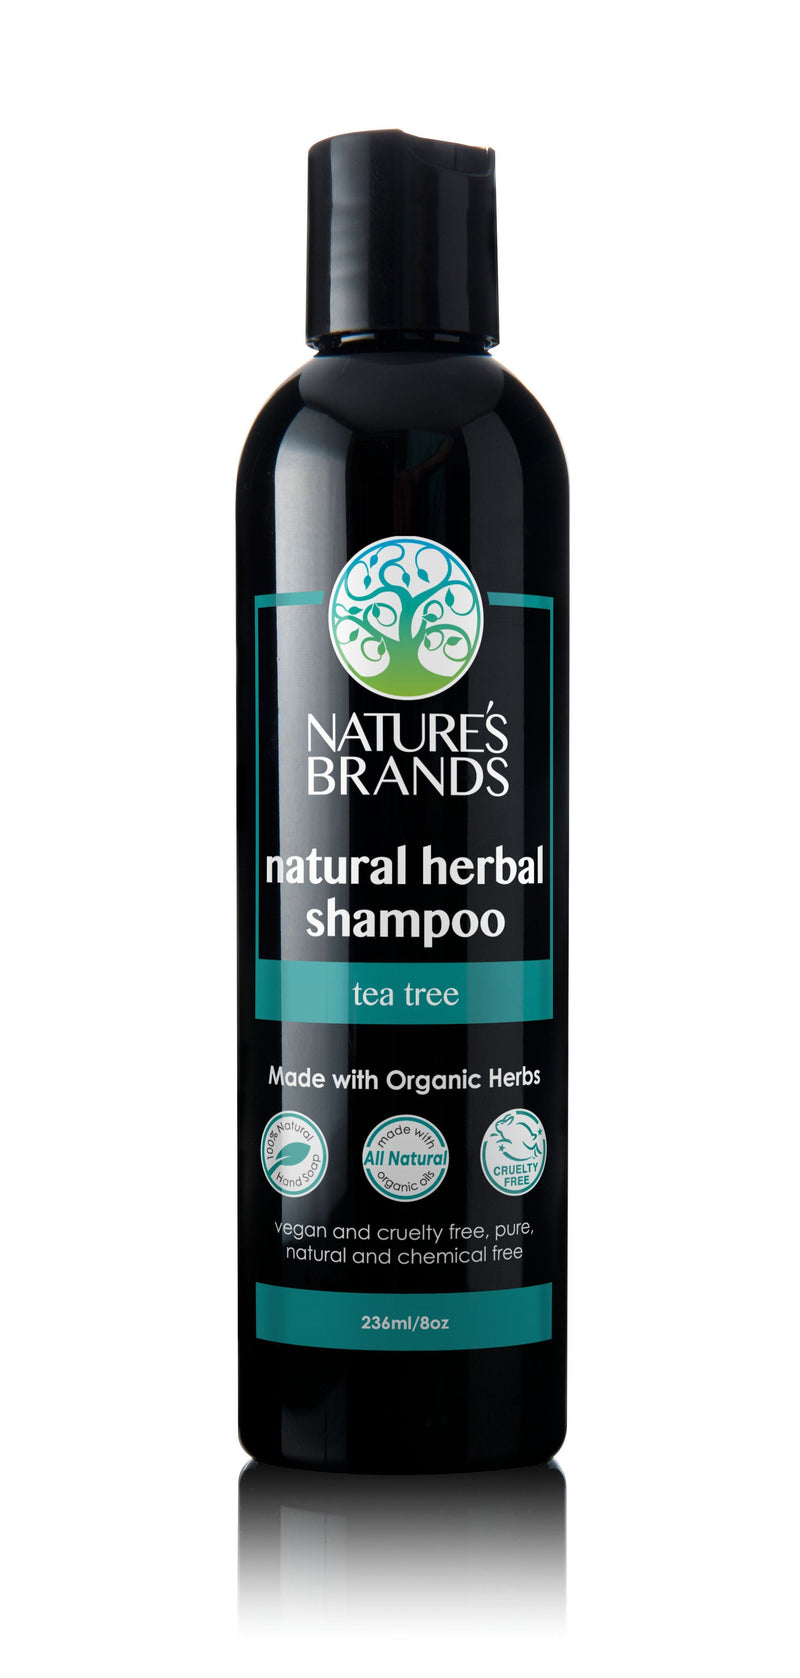 Herbal Choice Mari Natural Shampoo, Tea Tree; Made with Organic - Herbal Choice Mari Natural Shampoo, Tea Tree; Made with Organic - 8floz